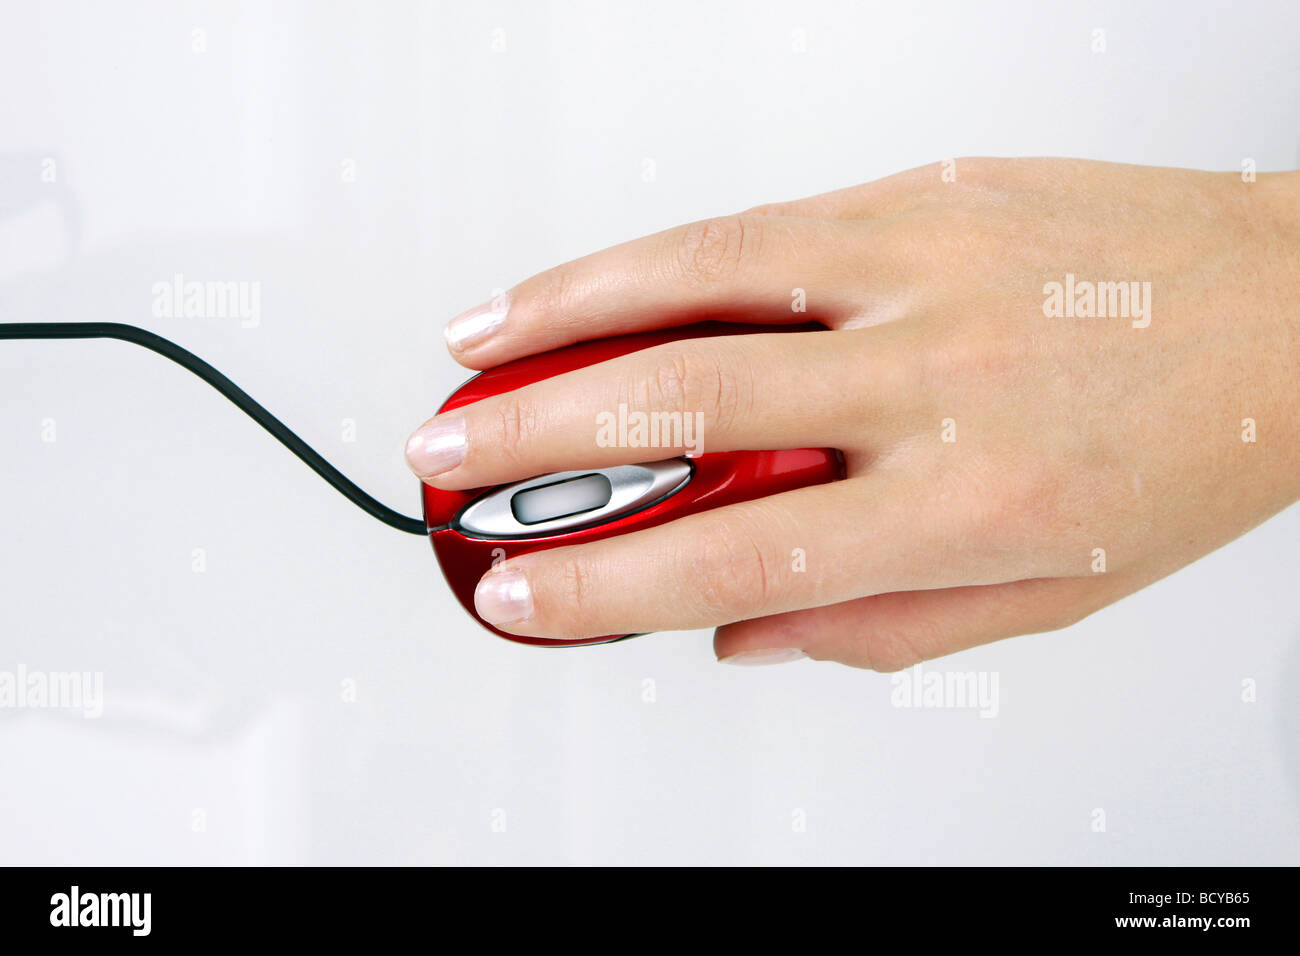 Frauenhand mit Computermaus woman hand with computer mouse - Stock Image